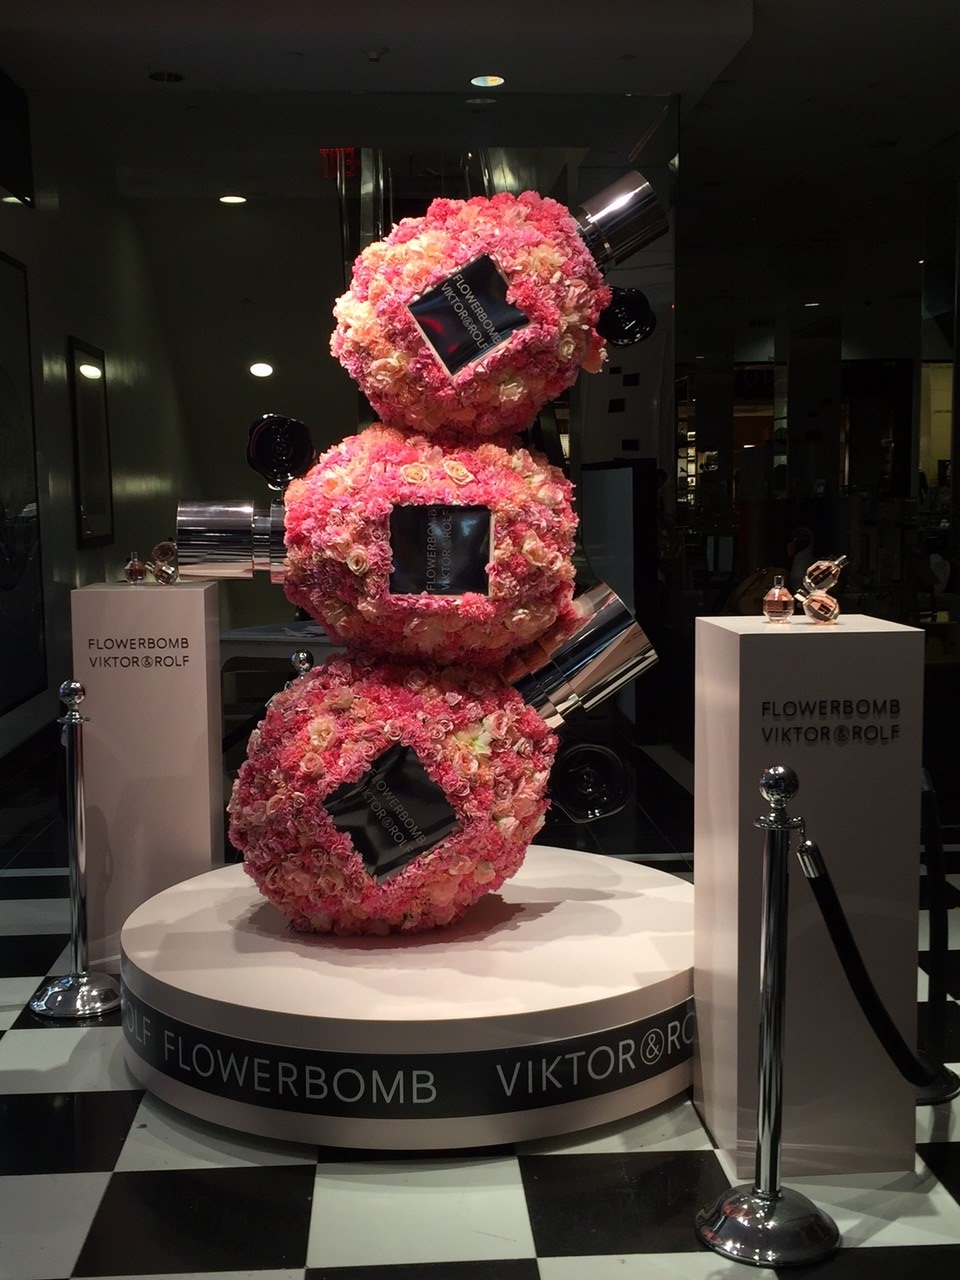 VICTOR & ROLF FLOWERBOMB FIXTURE DISPLAY FOR BLOOMINGDALES NYC